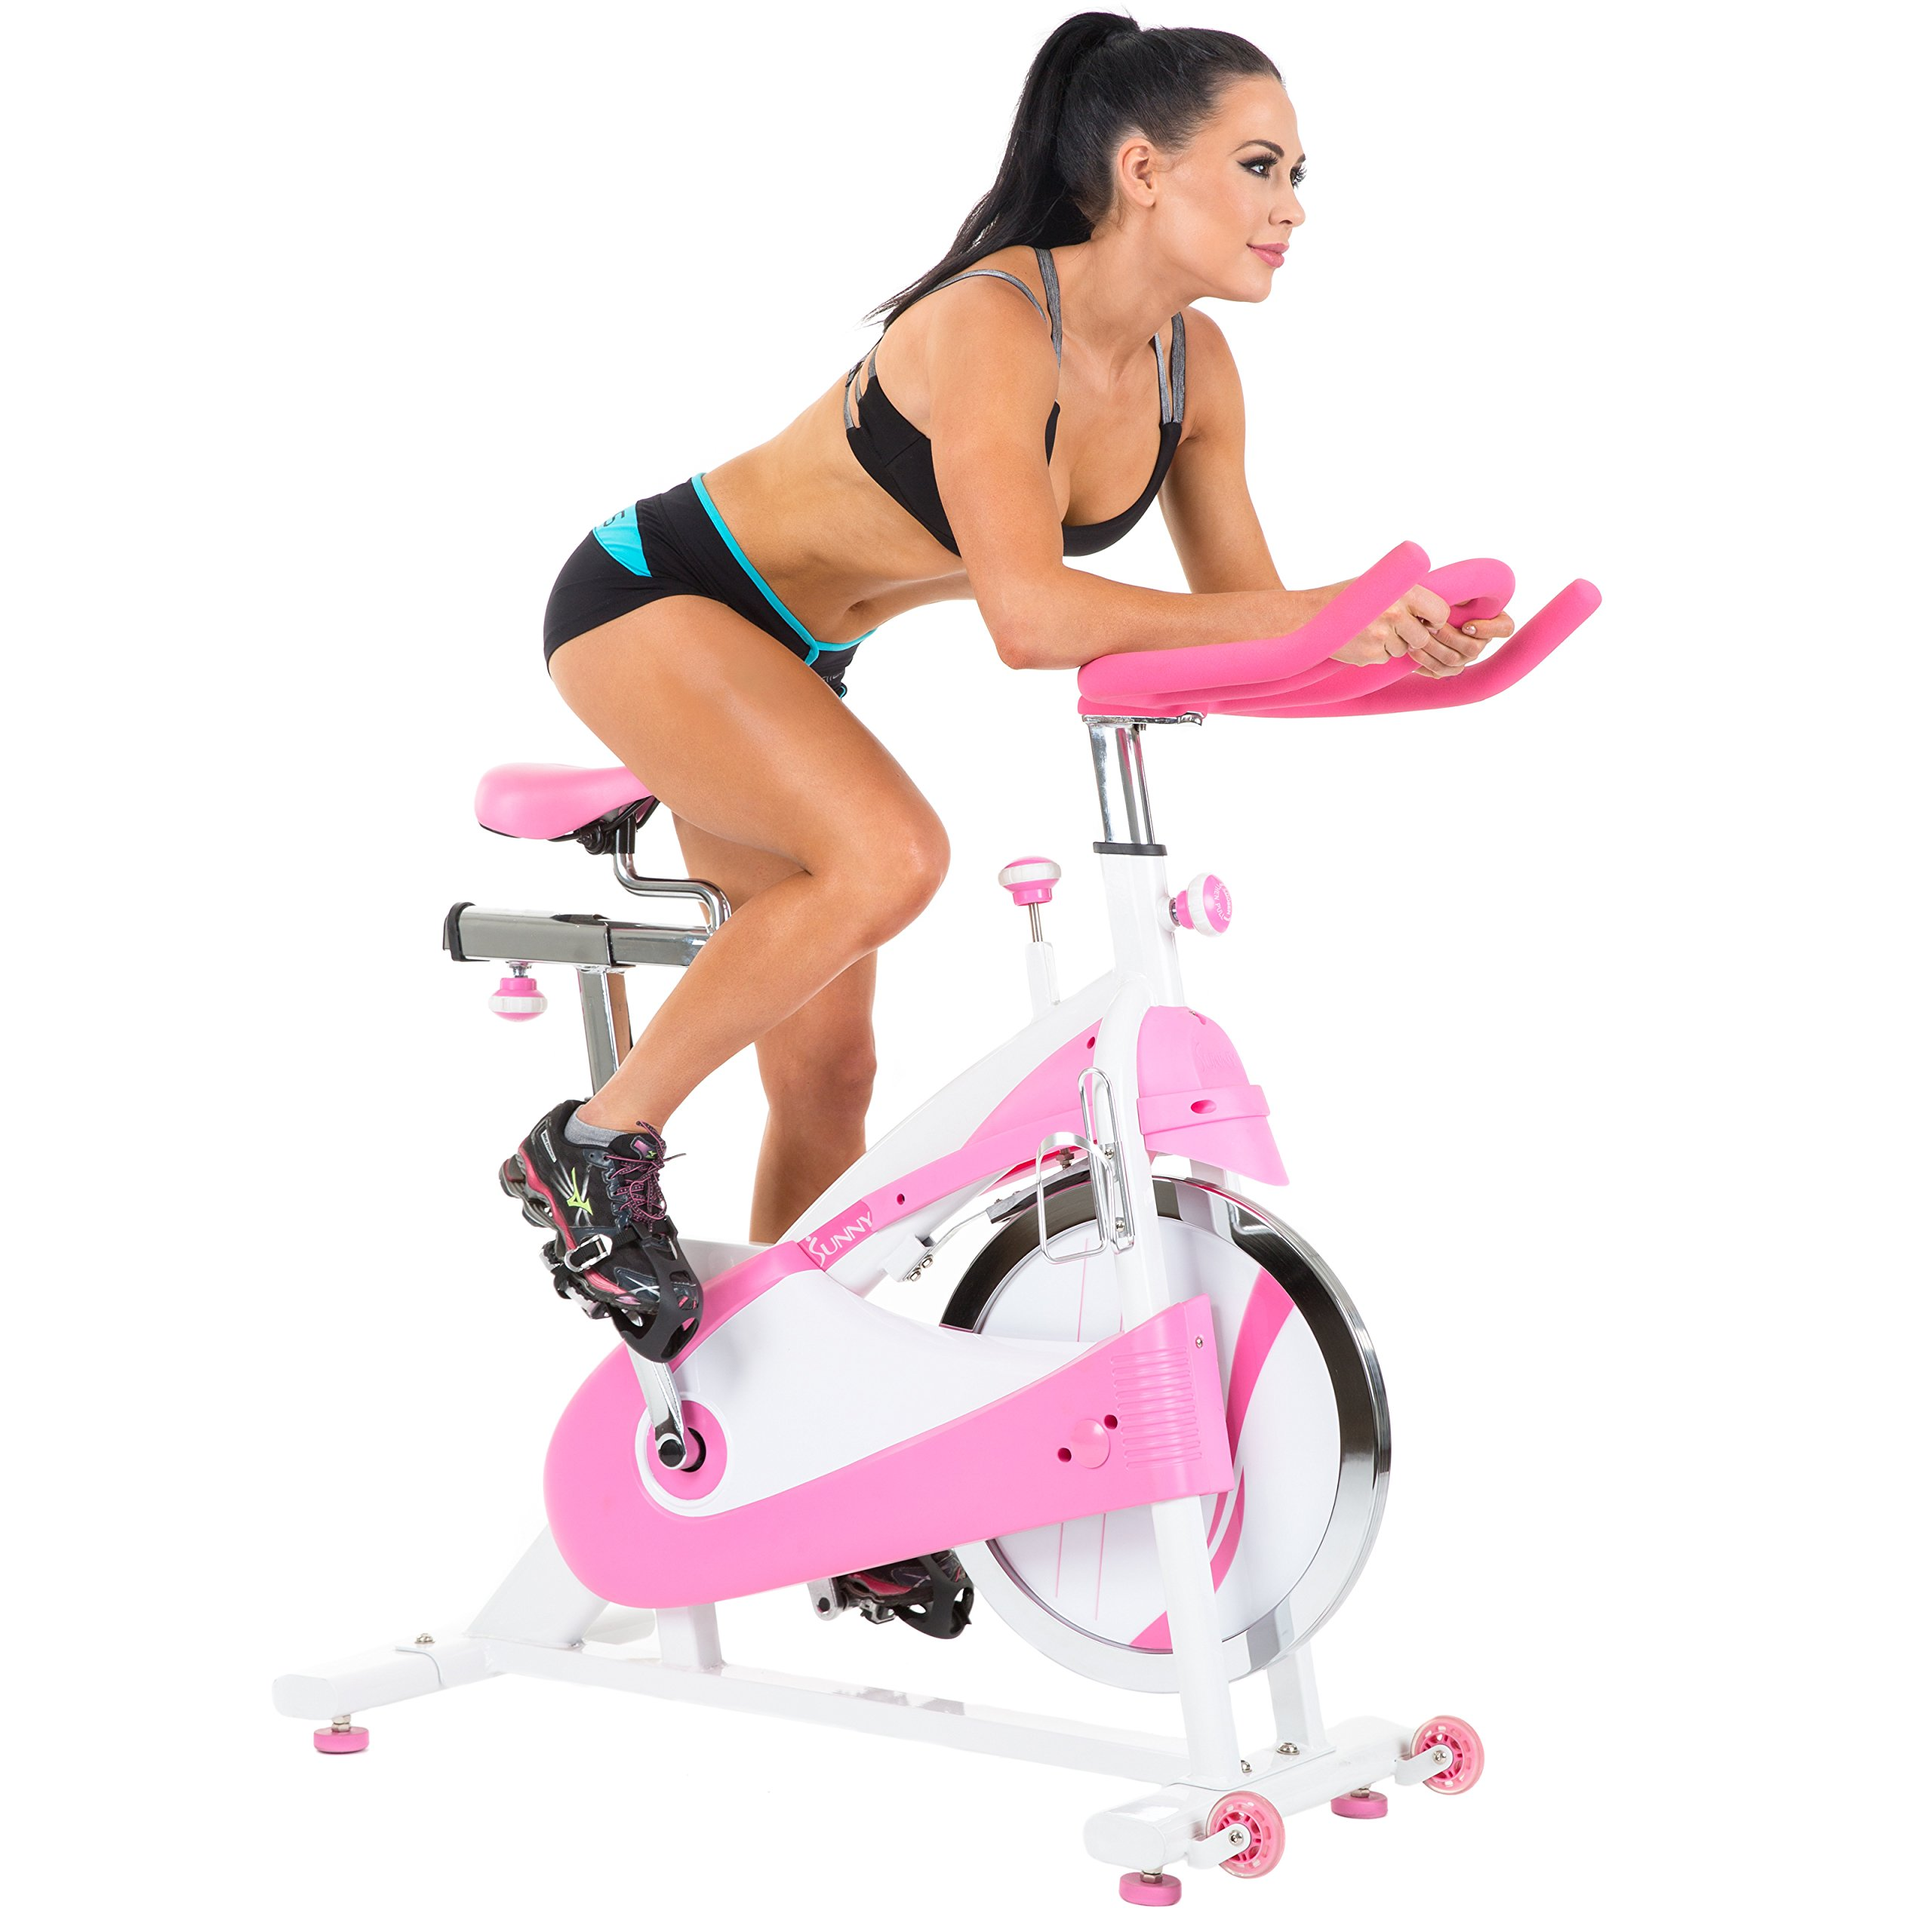 Sunny Health & Fitness P8150 Belt Drive Premium Indoor Cycling Bike, Pink by Sunny Health & Fitness